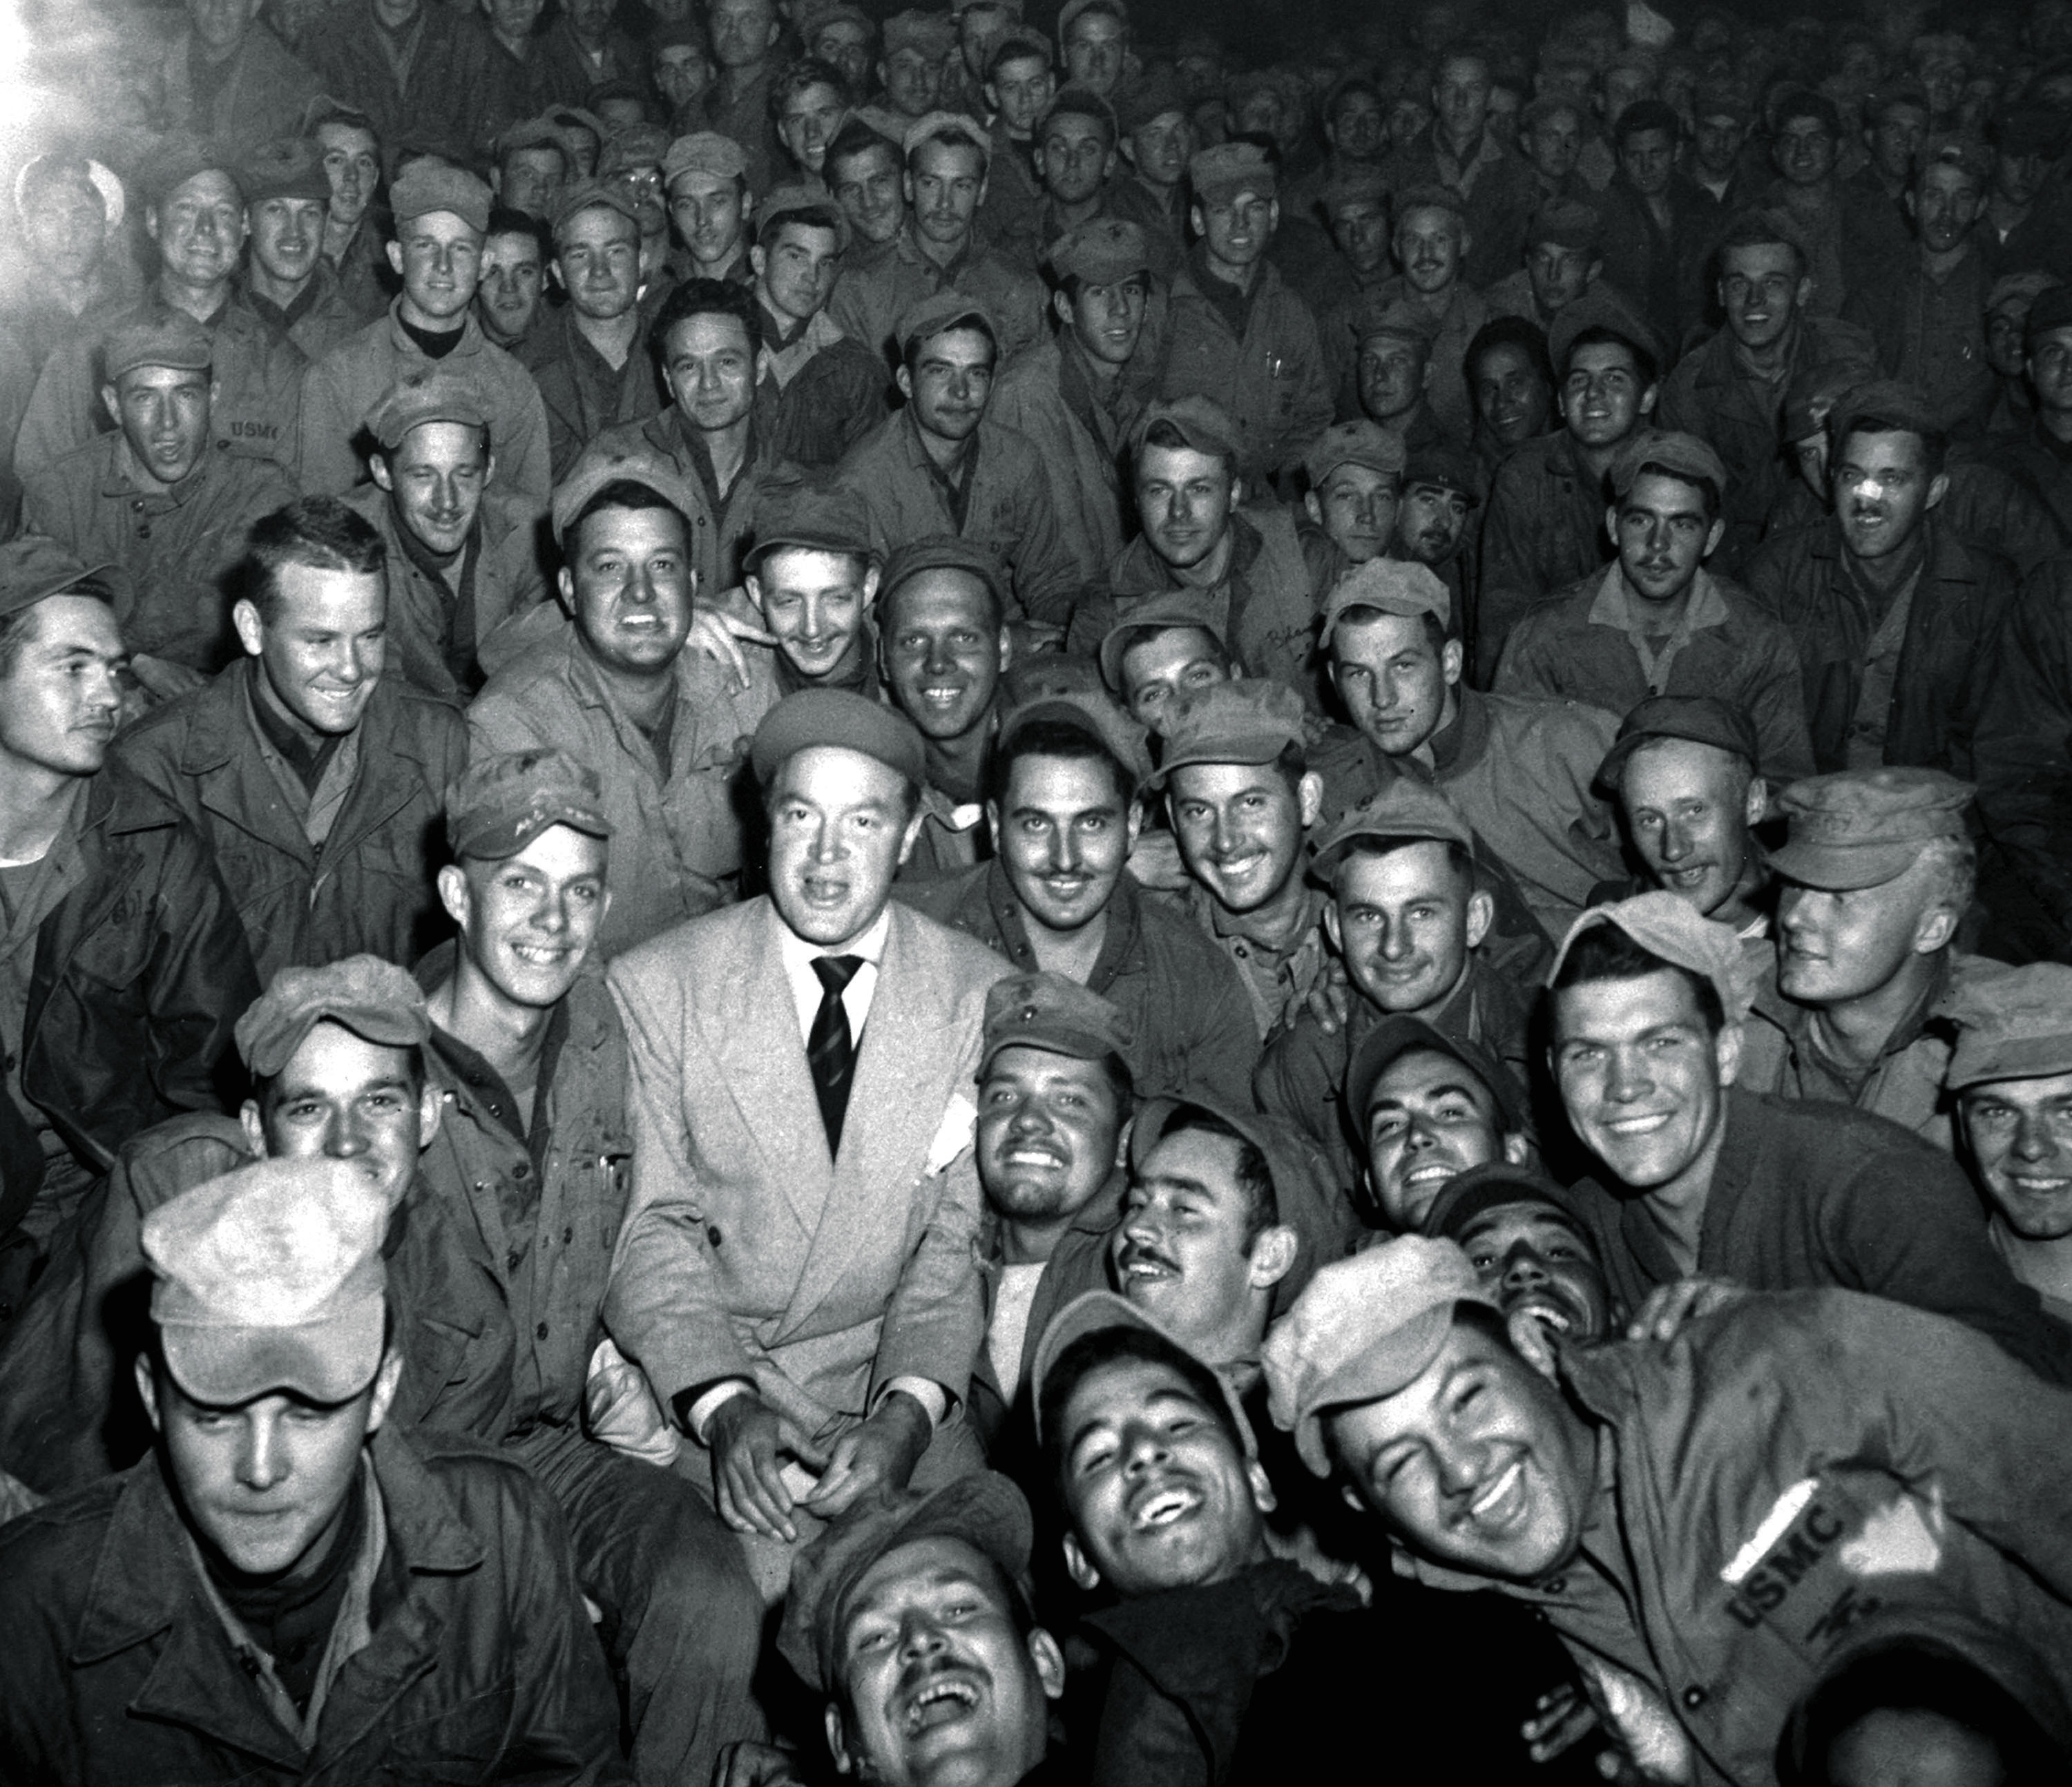 Radio and screen star Bob Hope (1903 - 2003) sits with the men of X Corps, as members of Hope's troupe entertain soldiers serving during the Korean War, in Womsan, Korea, October 1950. US Army photo. (Photo by Interim Archives/Getty Images)